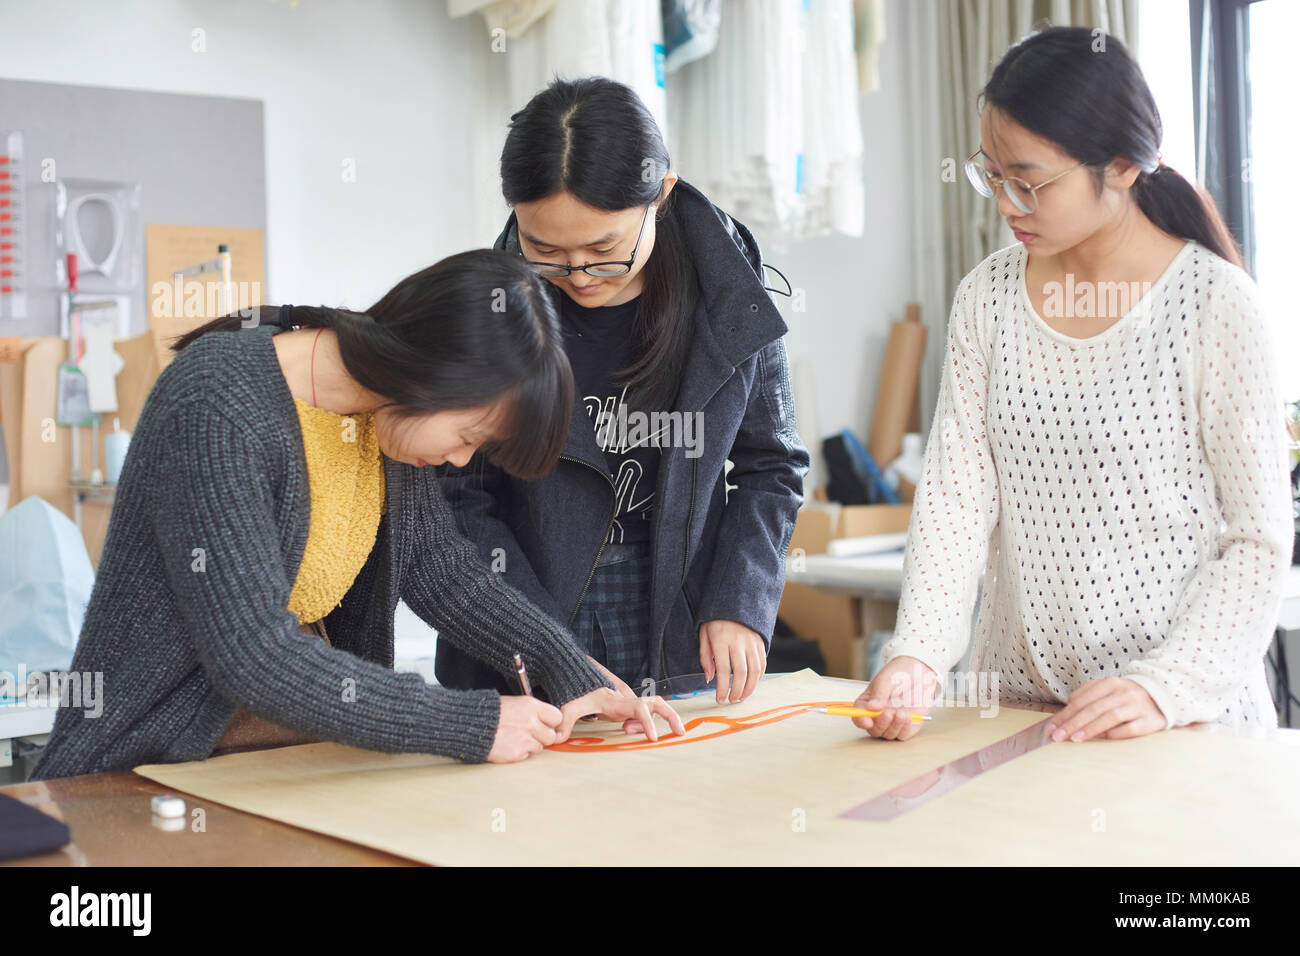 Trainee to study fashion design in the studio - Stock Image